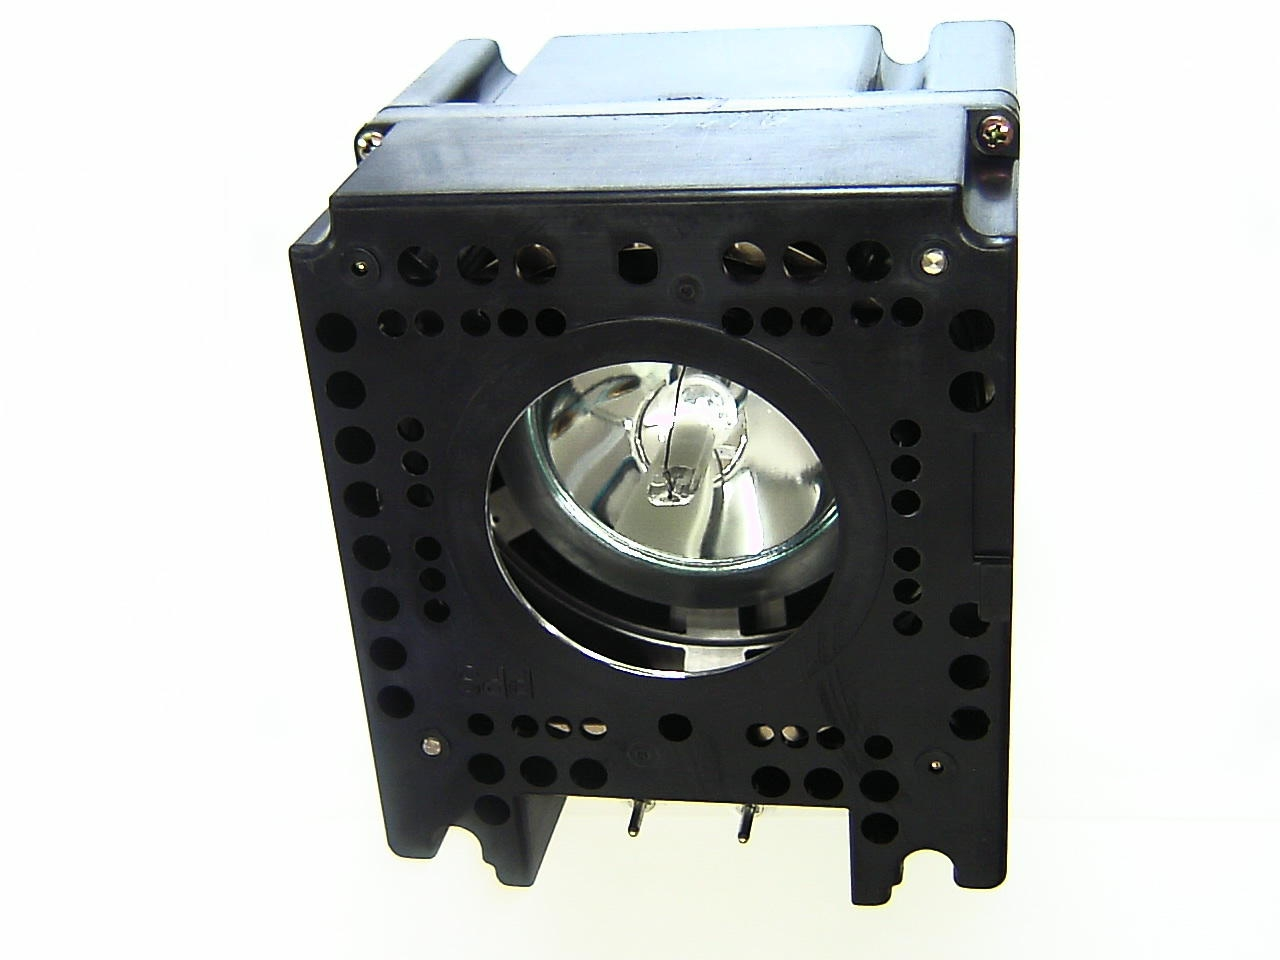 3M 3M MP8020 Genuine Original Projector Lamp